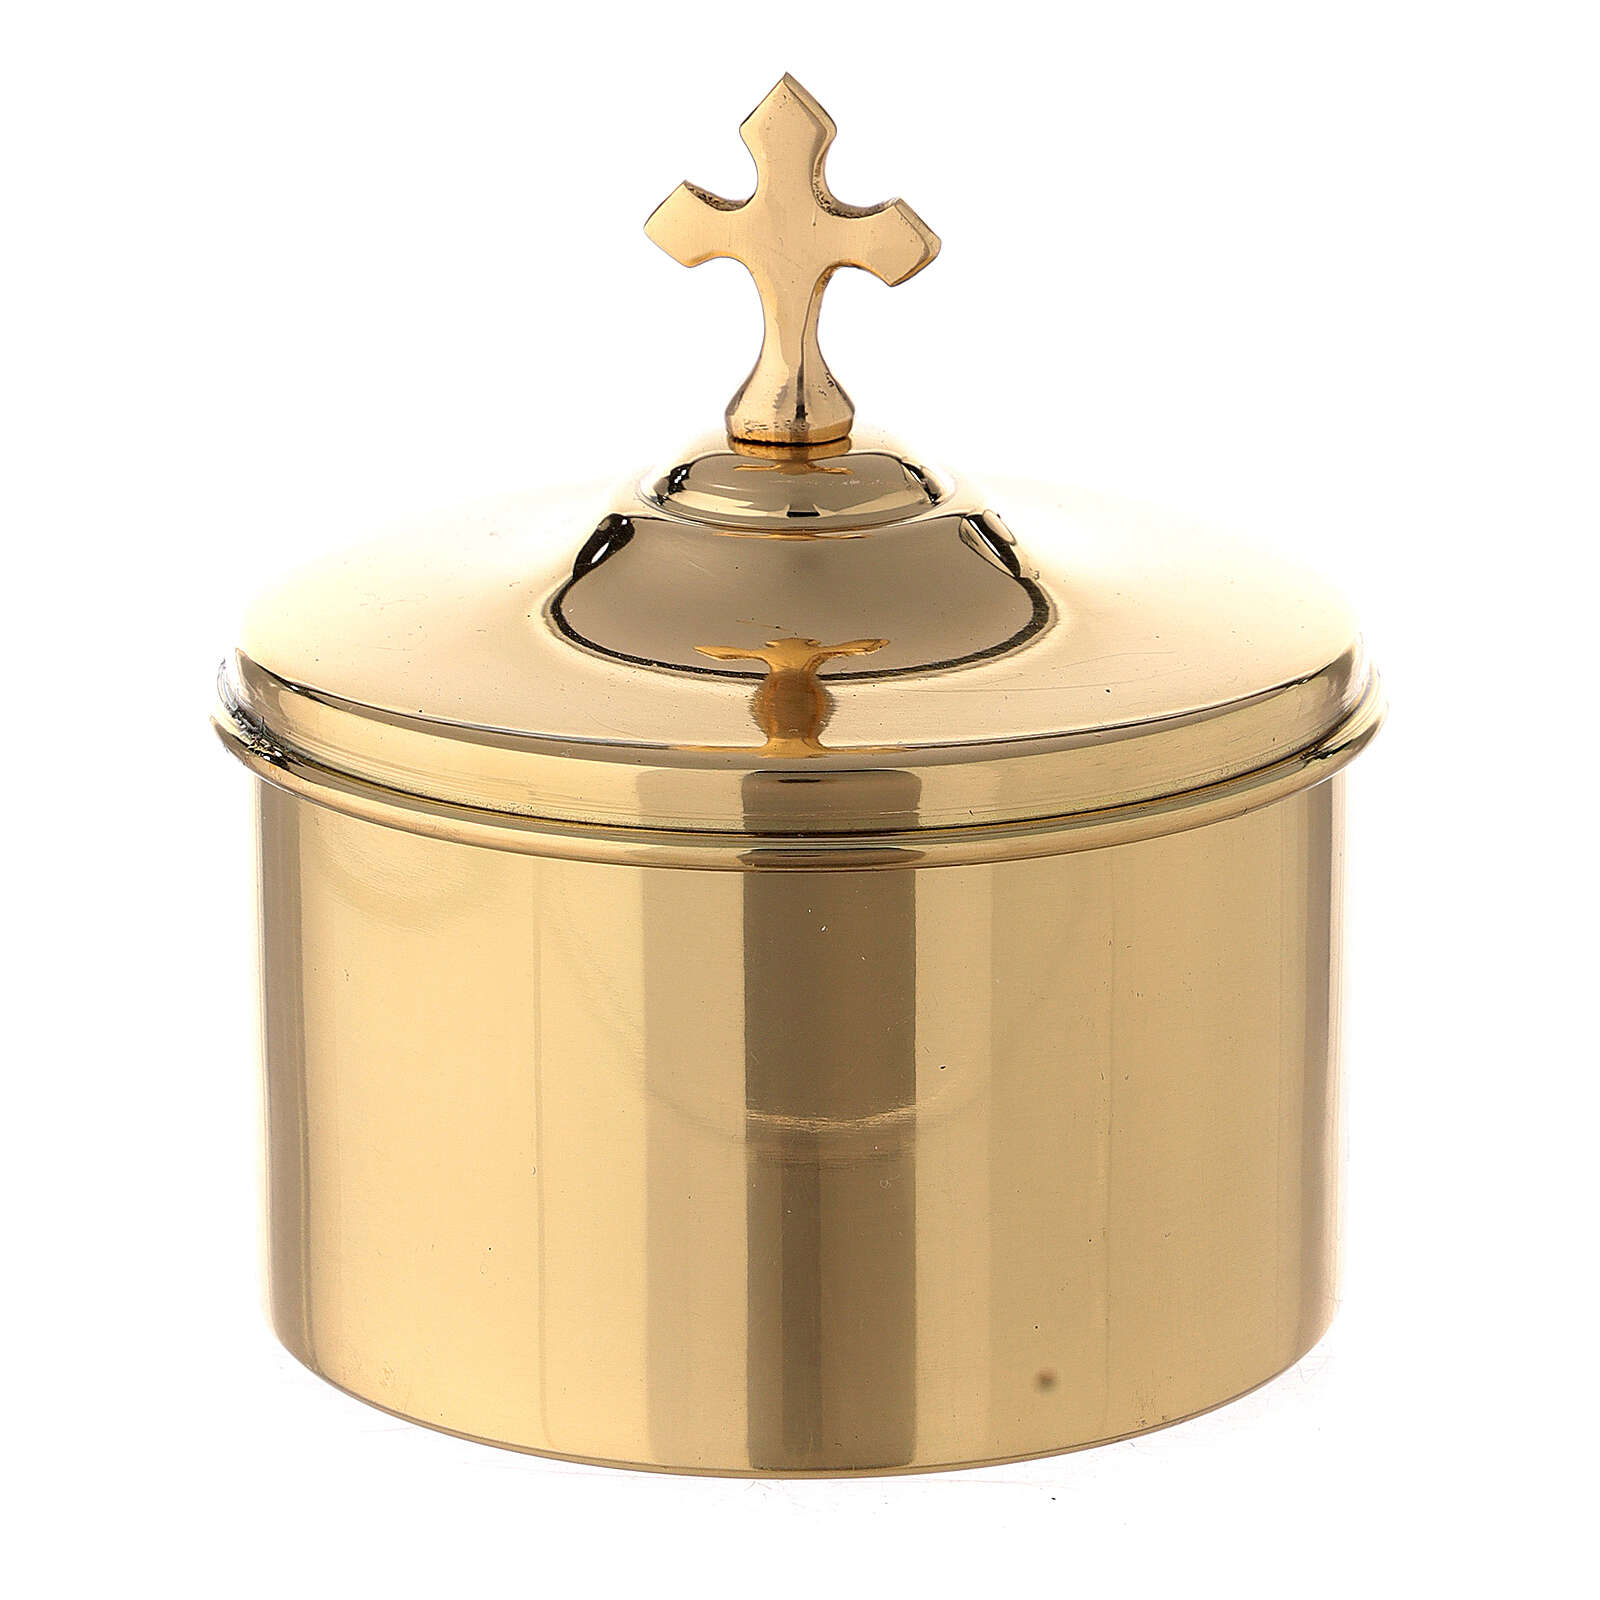 Gold plated brass altar bread box with cross h 2 3/4 in 3